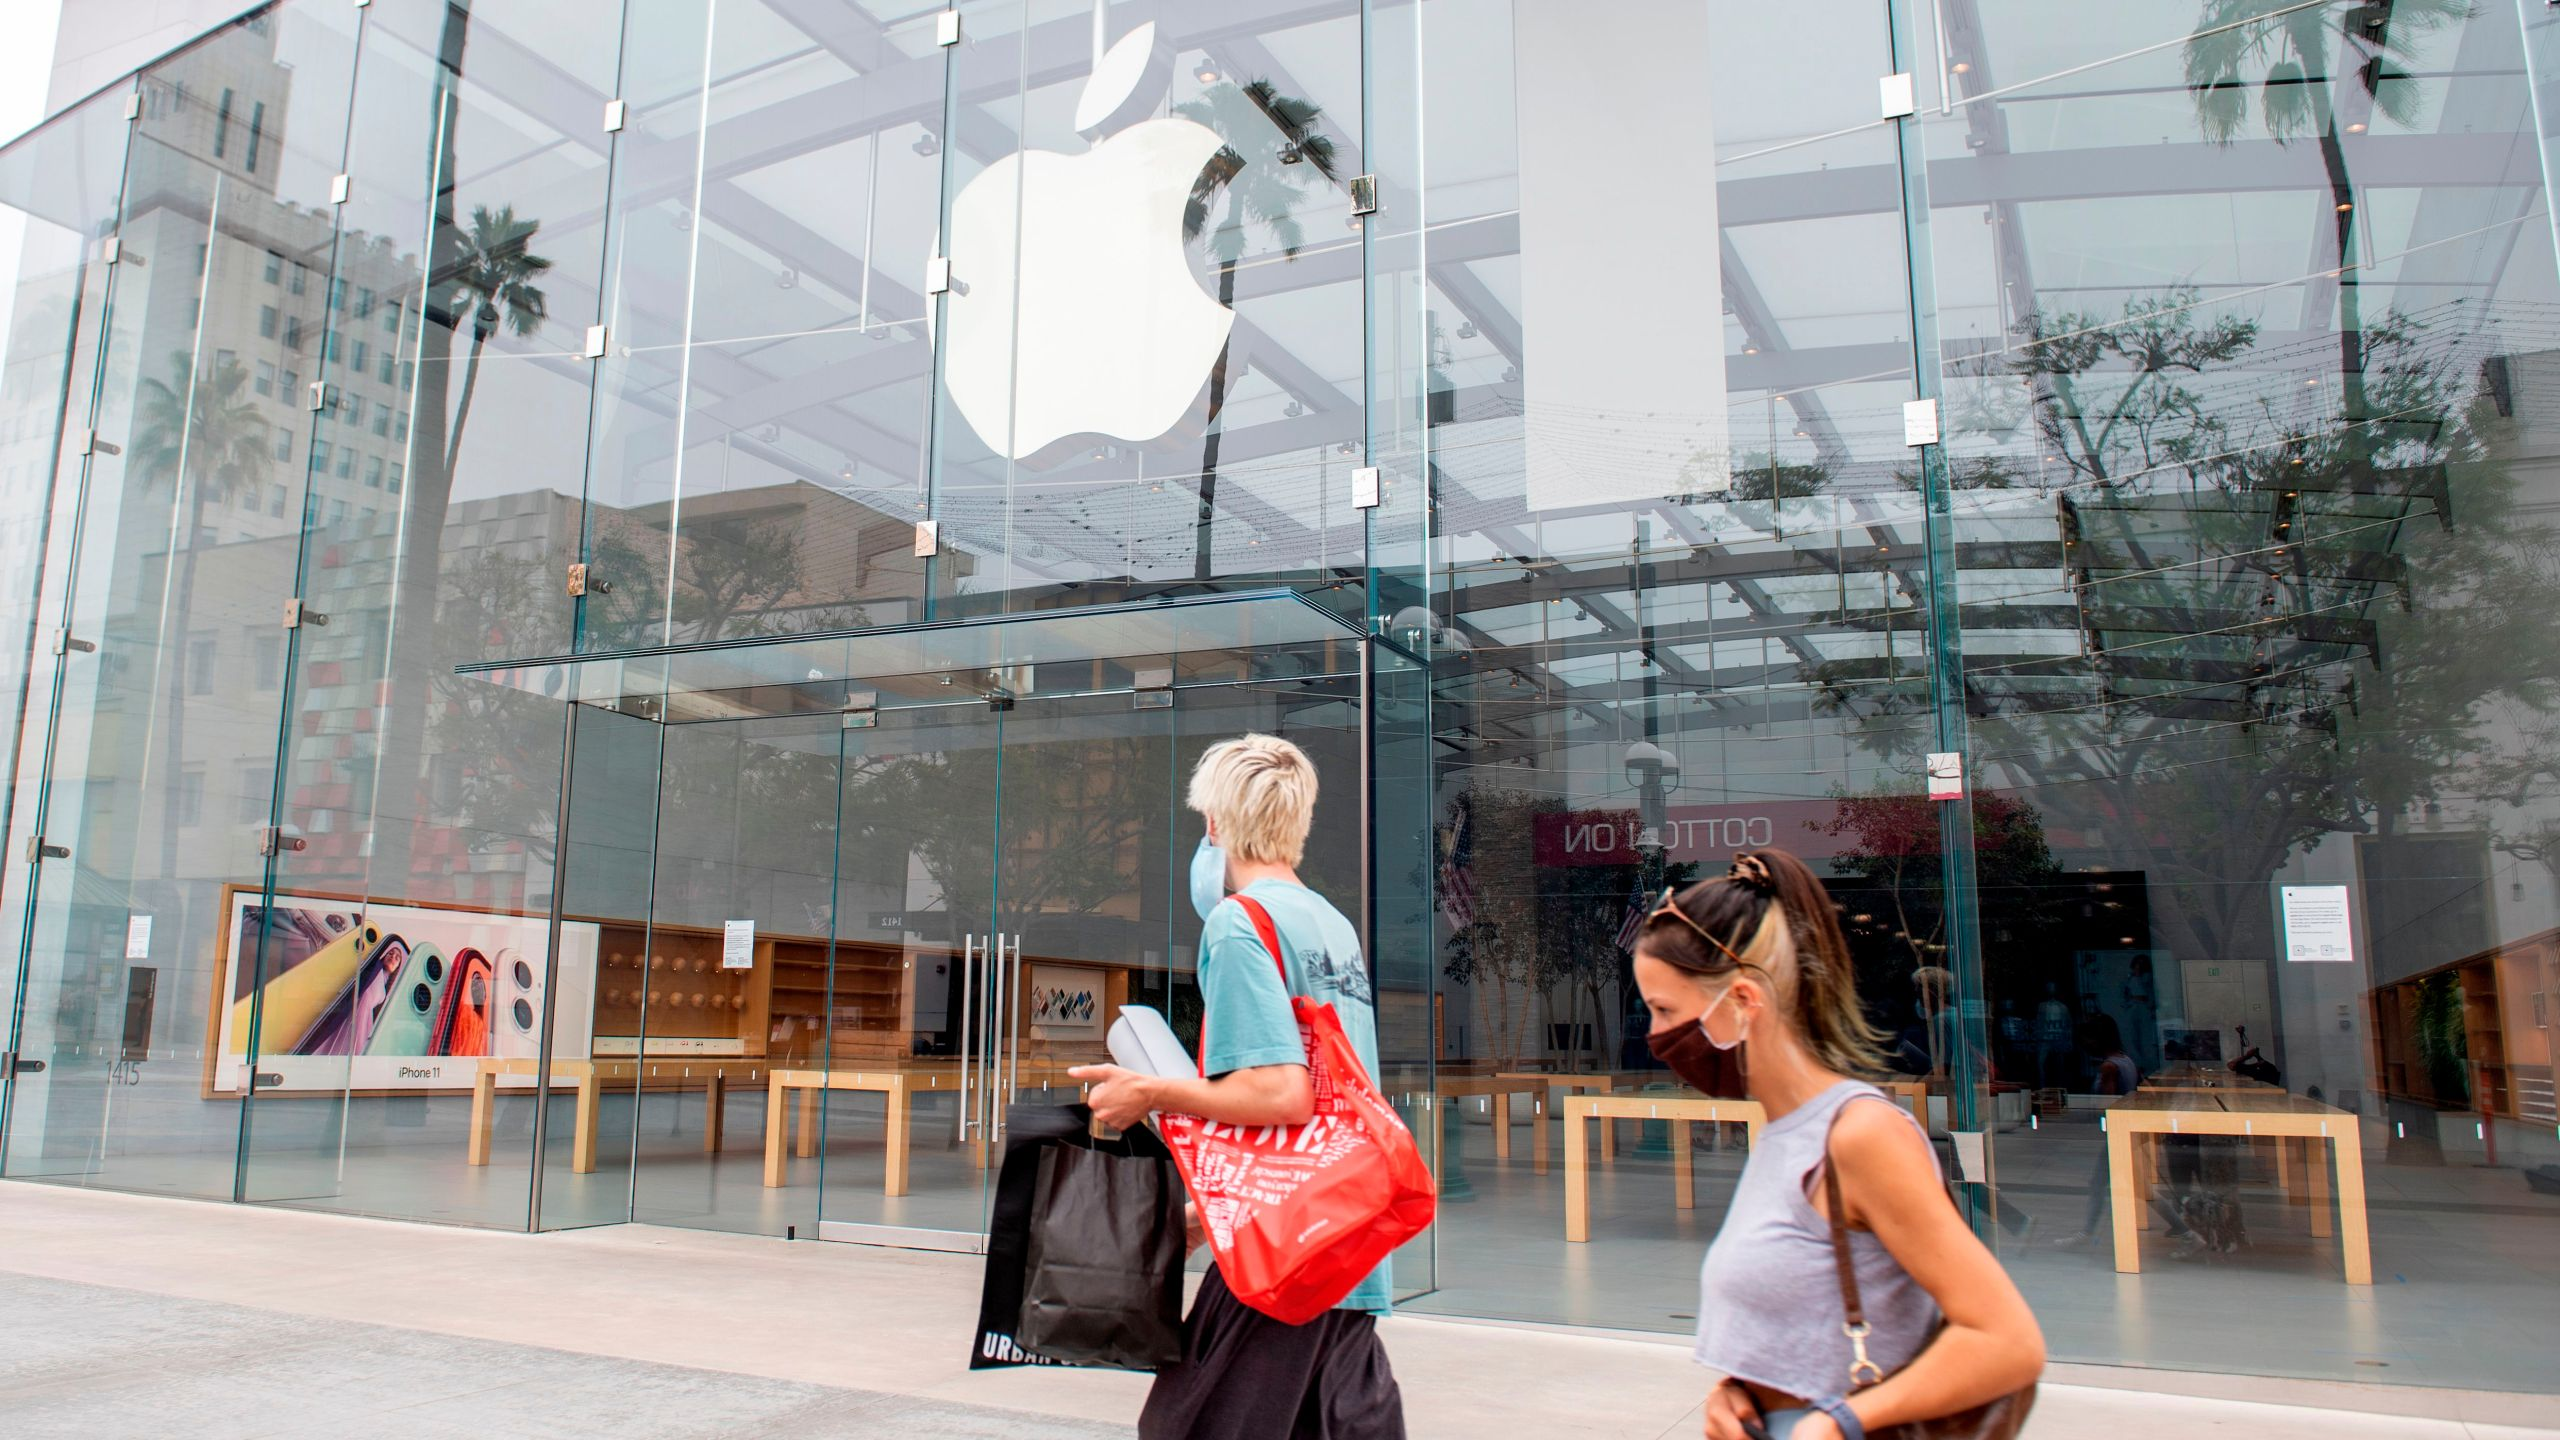 People wearing a mask walk by a closed Apple Store in Santa Monica, California, on July 28, 2020. (VALERIE MACON/AFP via Getty Images)